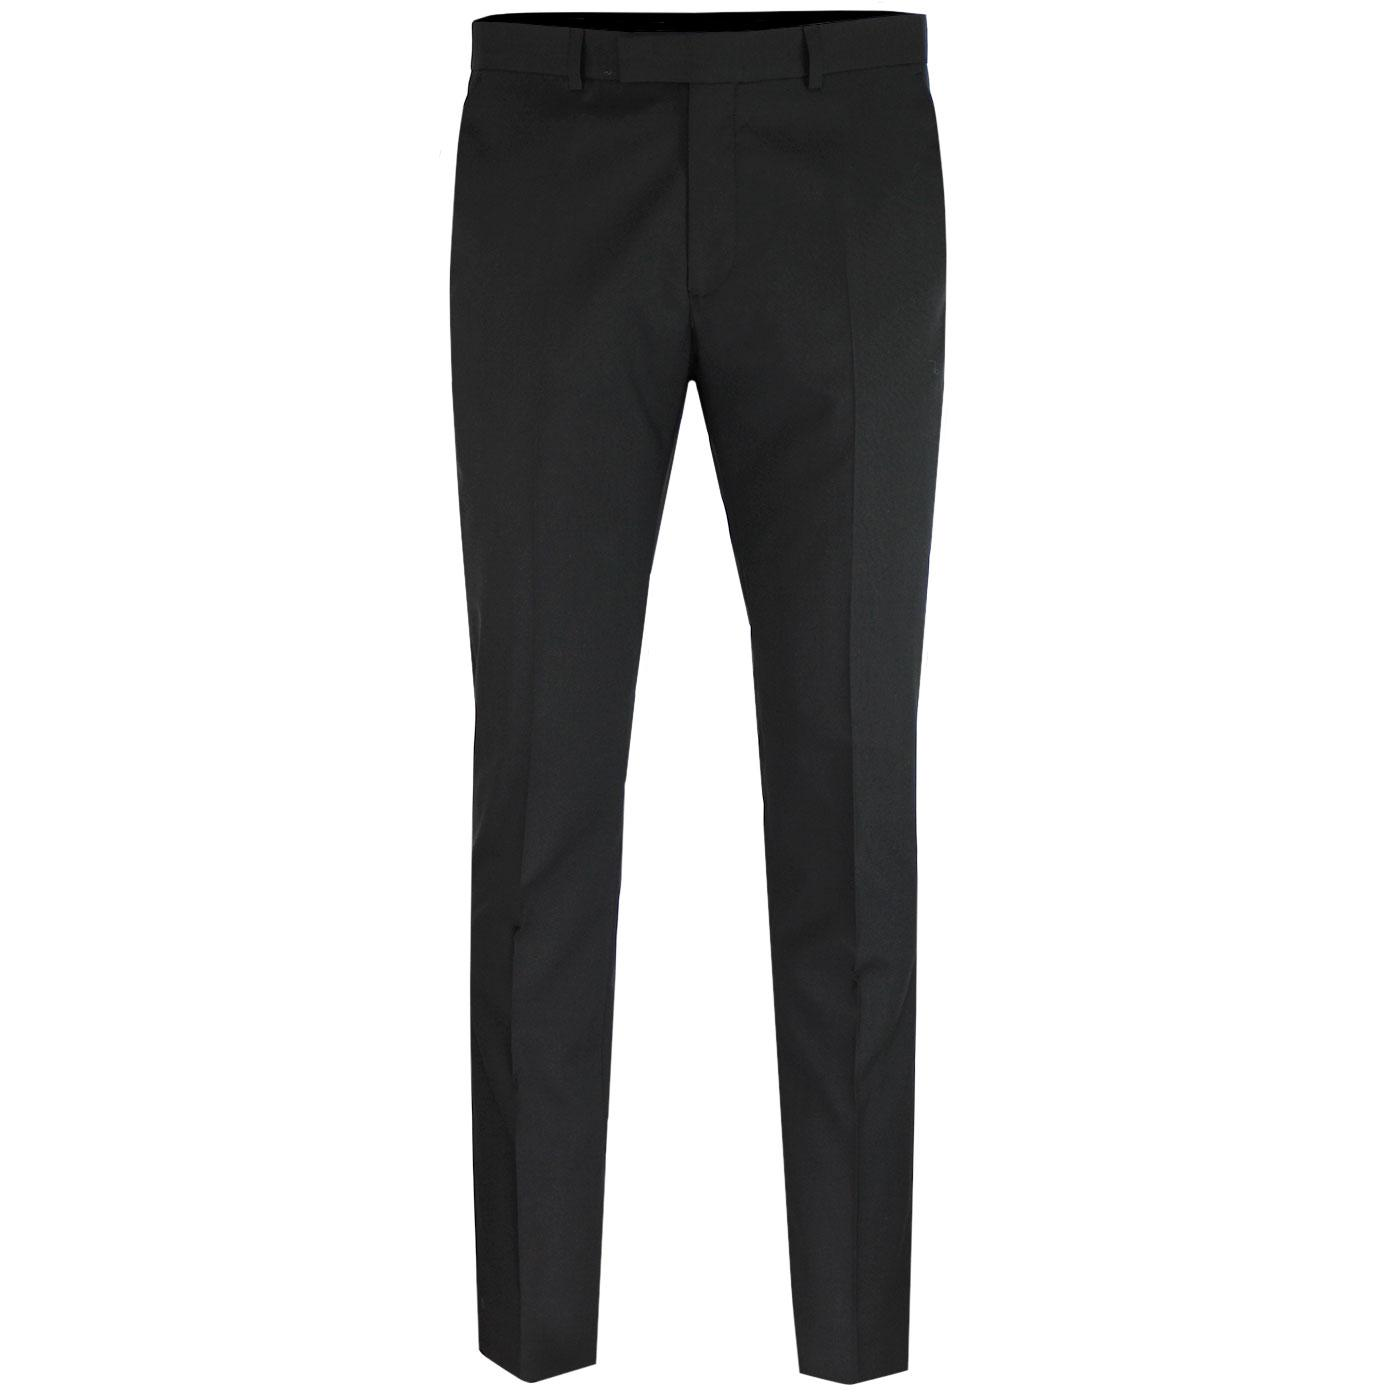 BEN SHERMAN Tailoring Tonic Suit Trousers BLACK